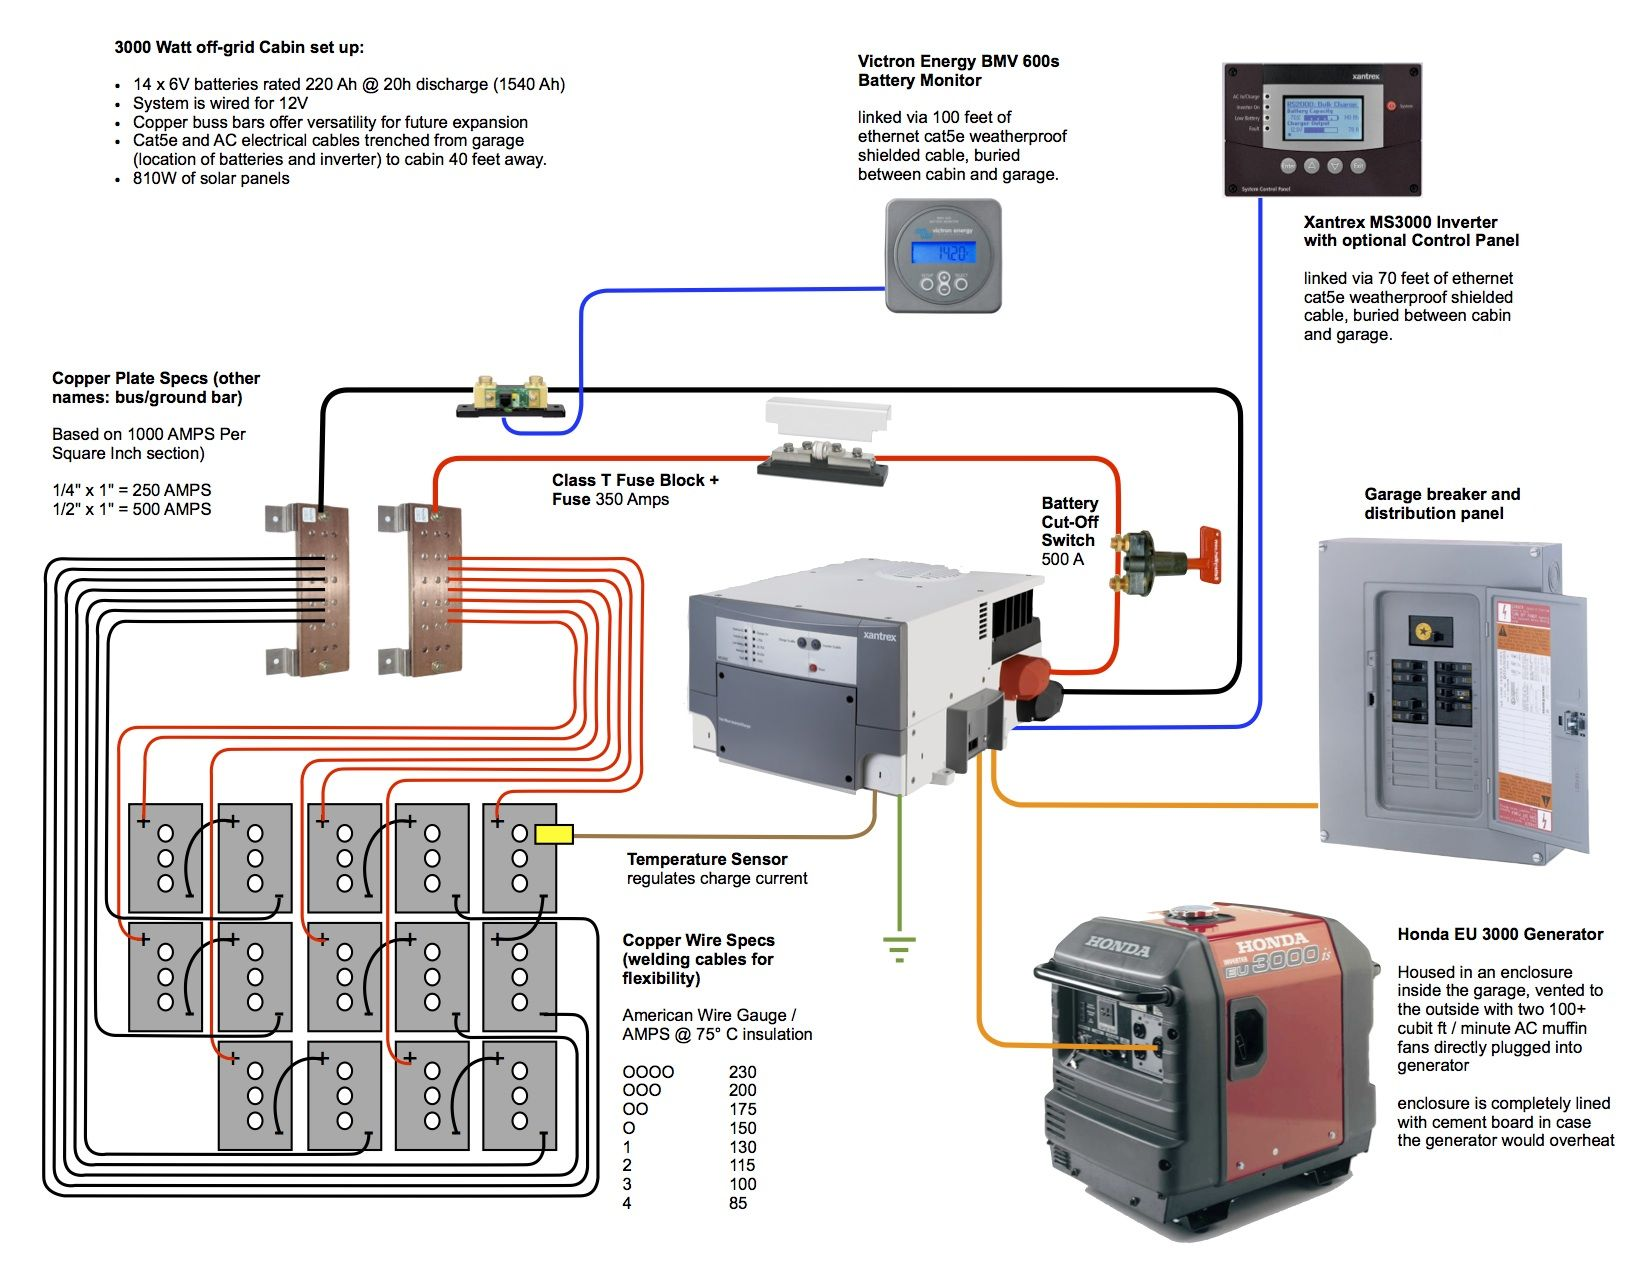 portable solar generators wiring diagram with 473089135834818609 on Off Grid Energy System 4kw likewise 22891 besides View All besides CTEKD250S as well Activebatteriesandsolar.